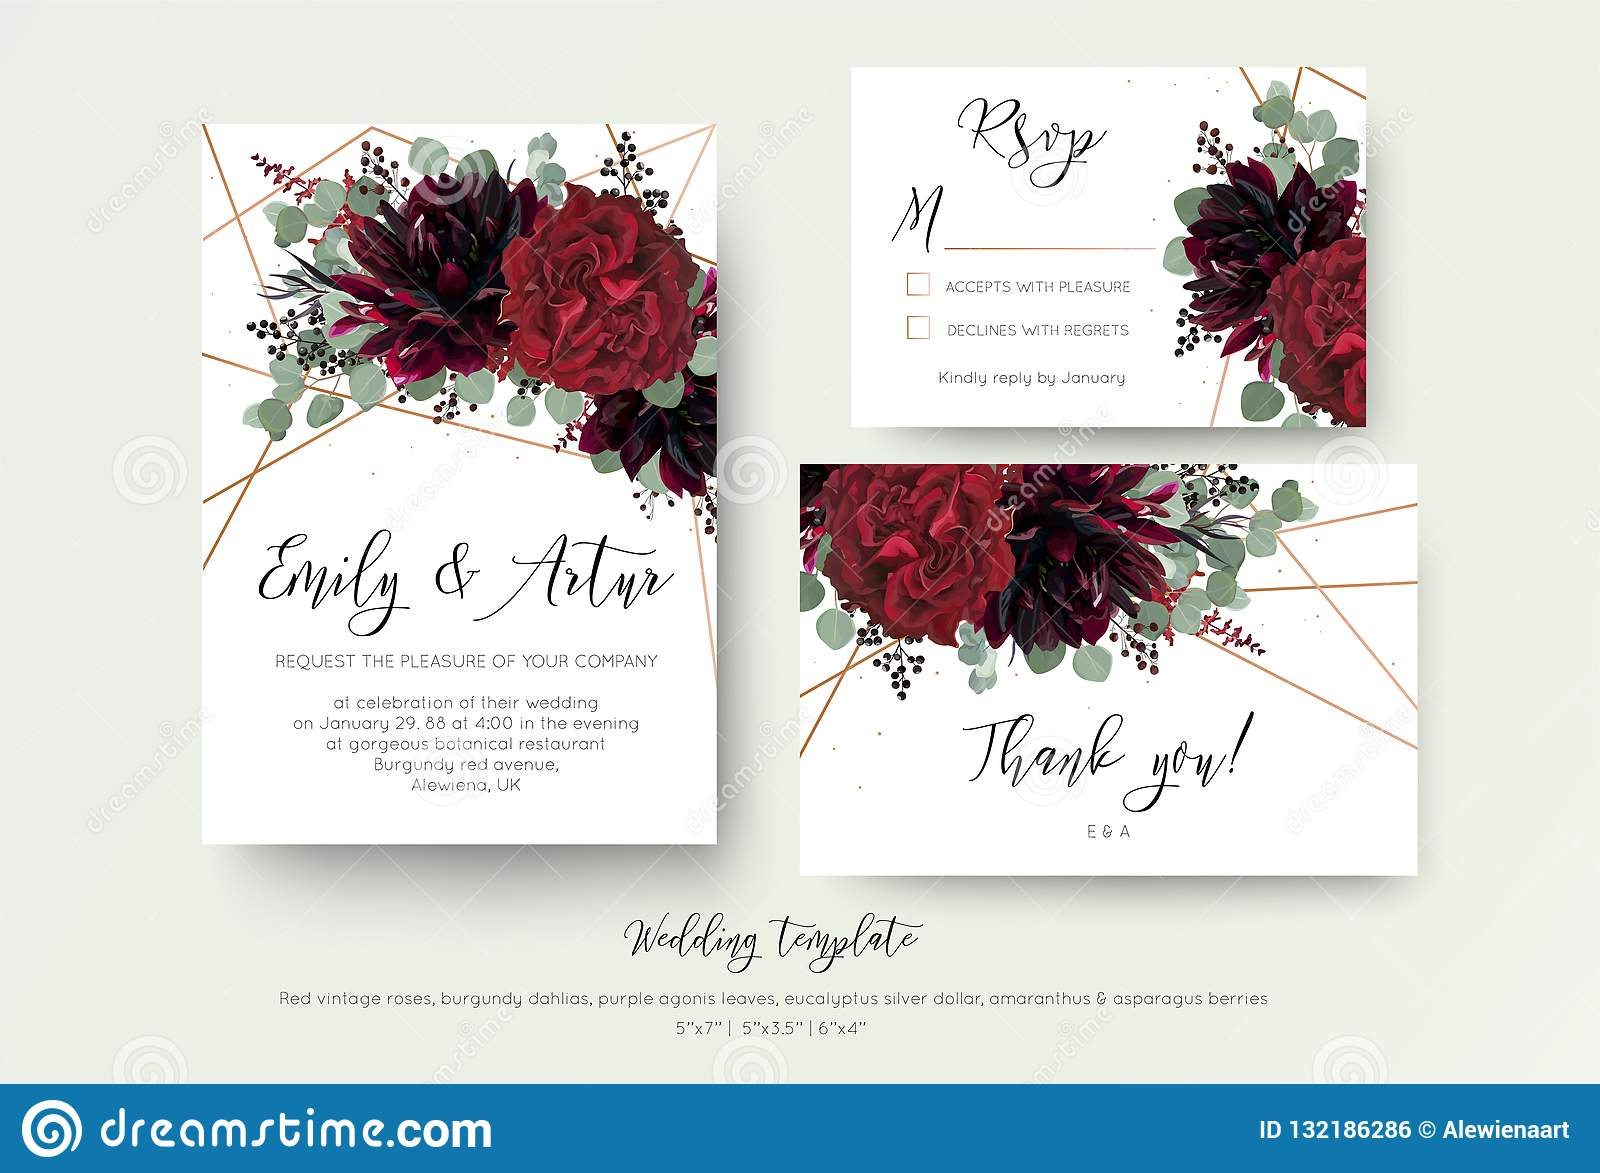 Wedding invite invitation, rsvp, thank you card floral design. R